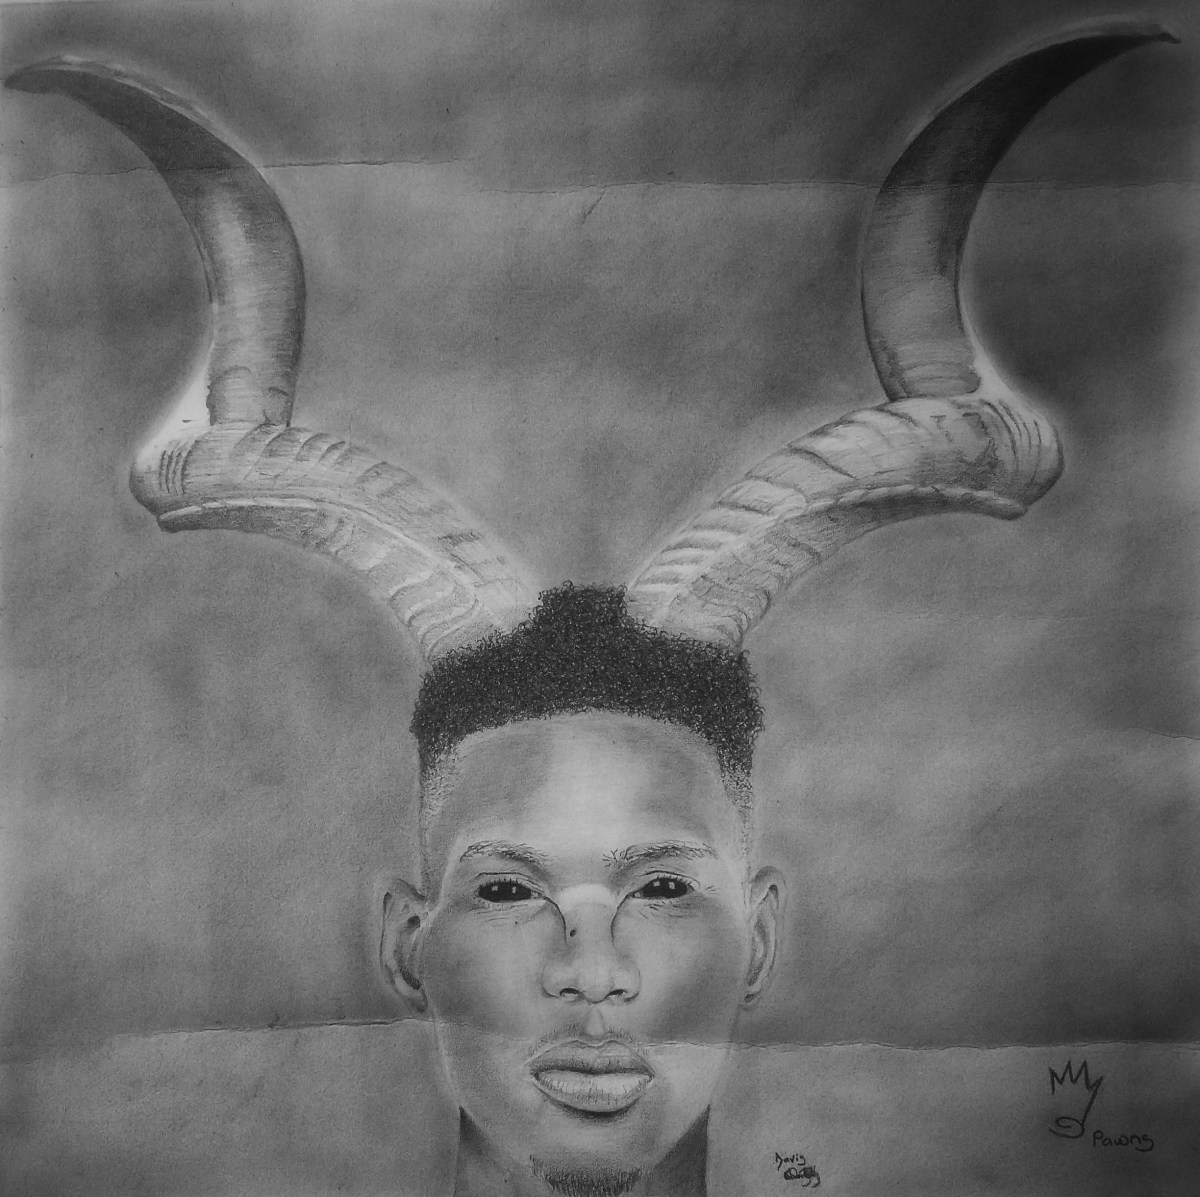 This is an Art work. A sketch of Dick David with horns